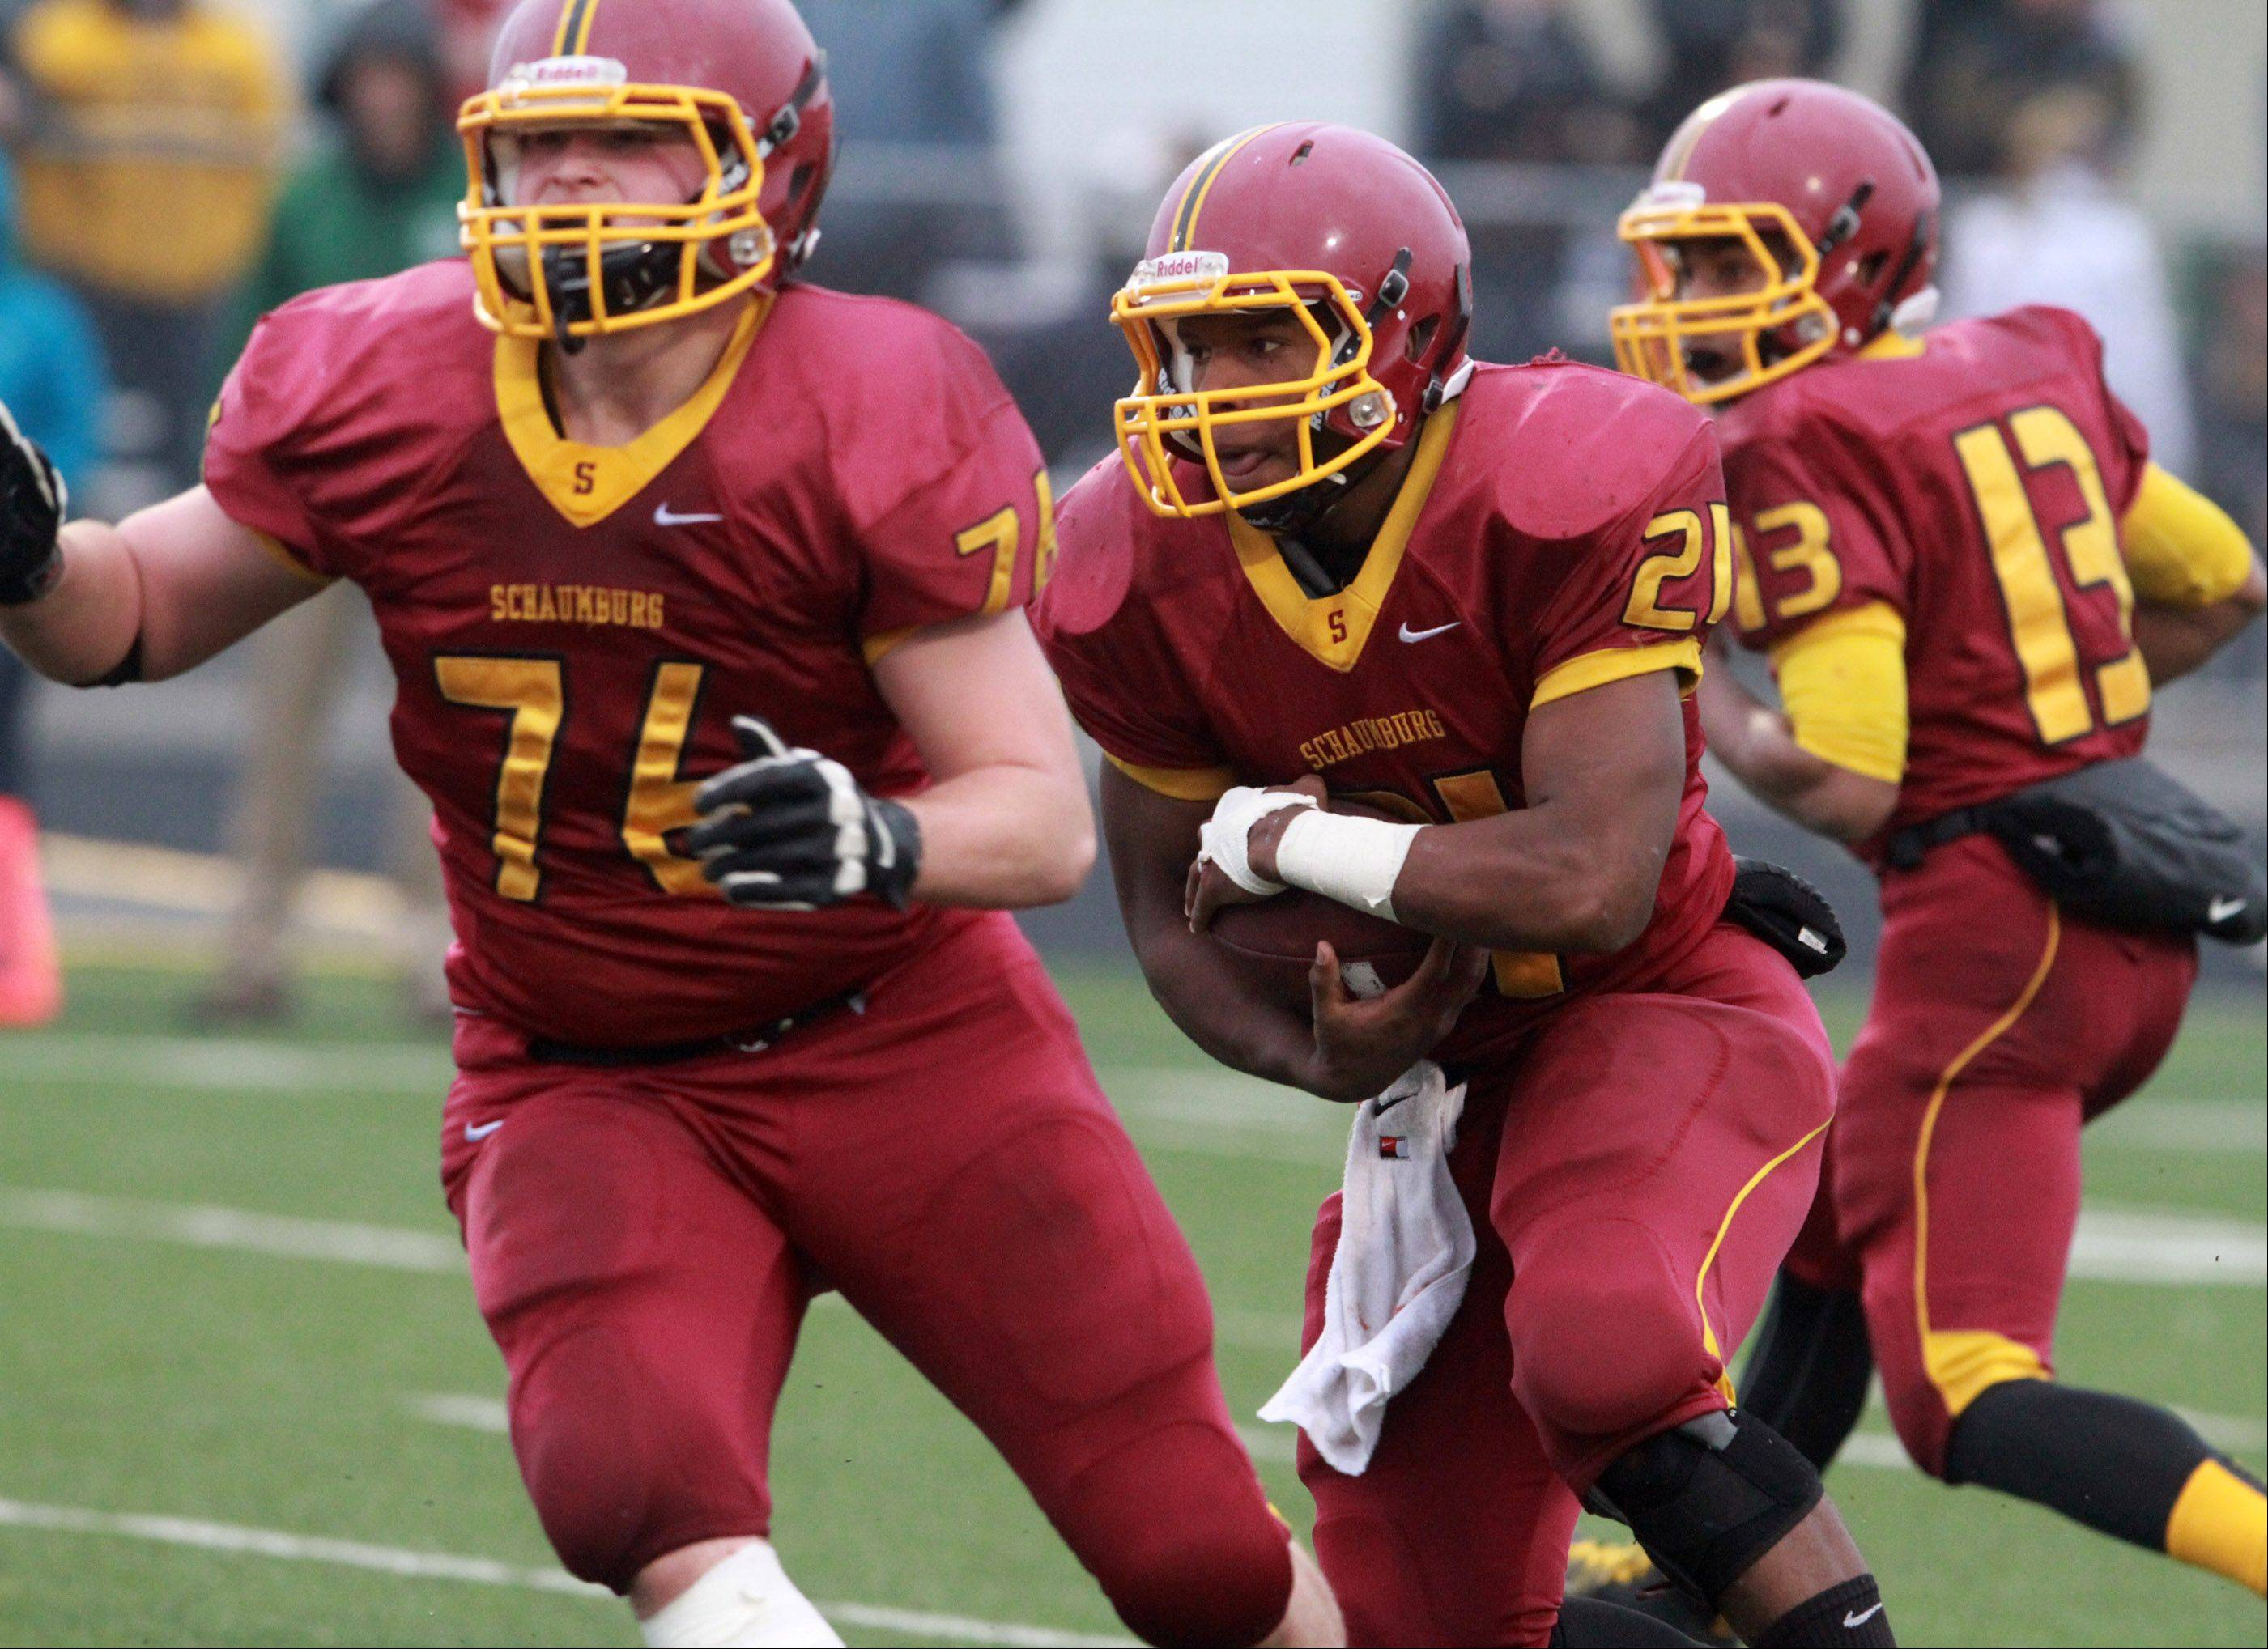 Schaumburg running back Justice Macneal-Young runs behind blocking from Aleksander Piotrowski against Glenbard West.